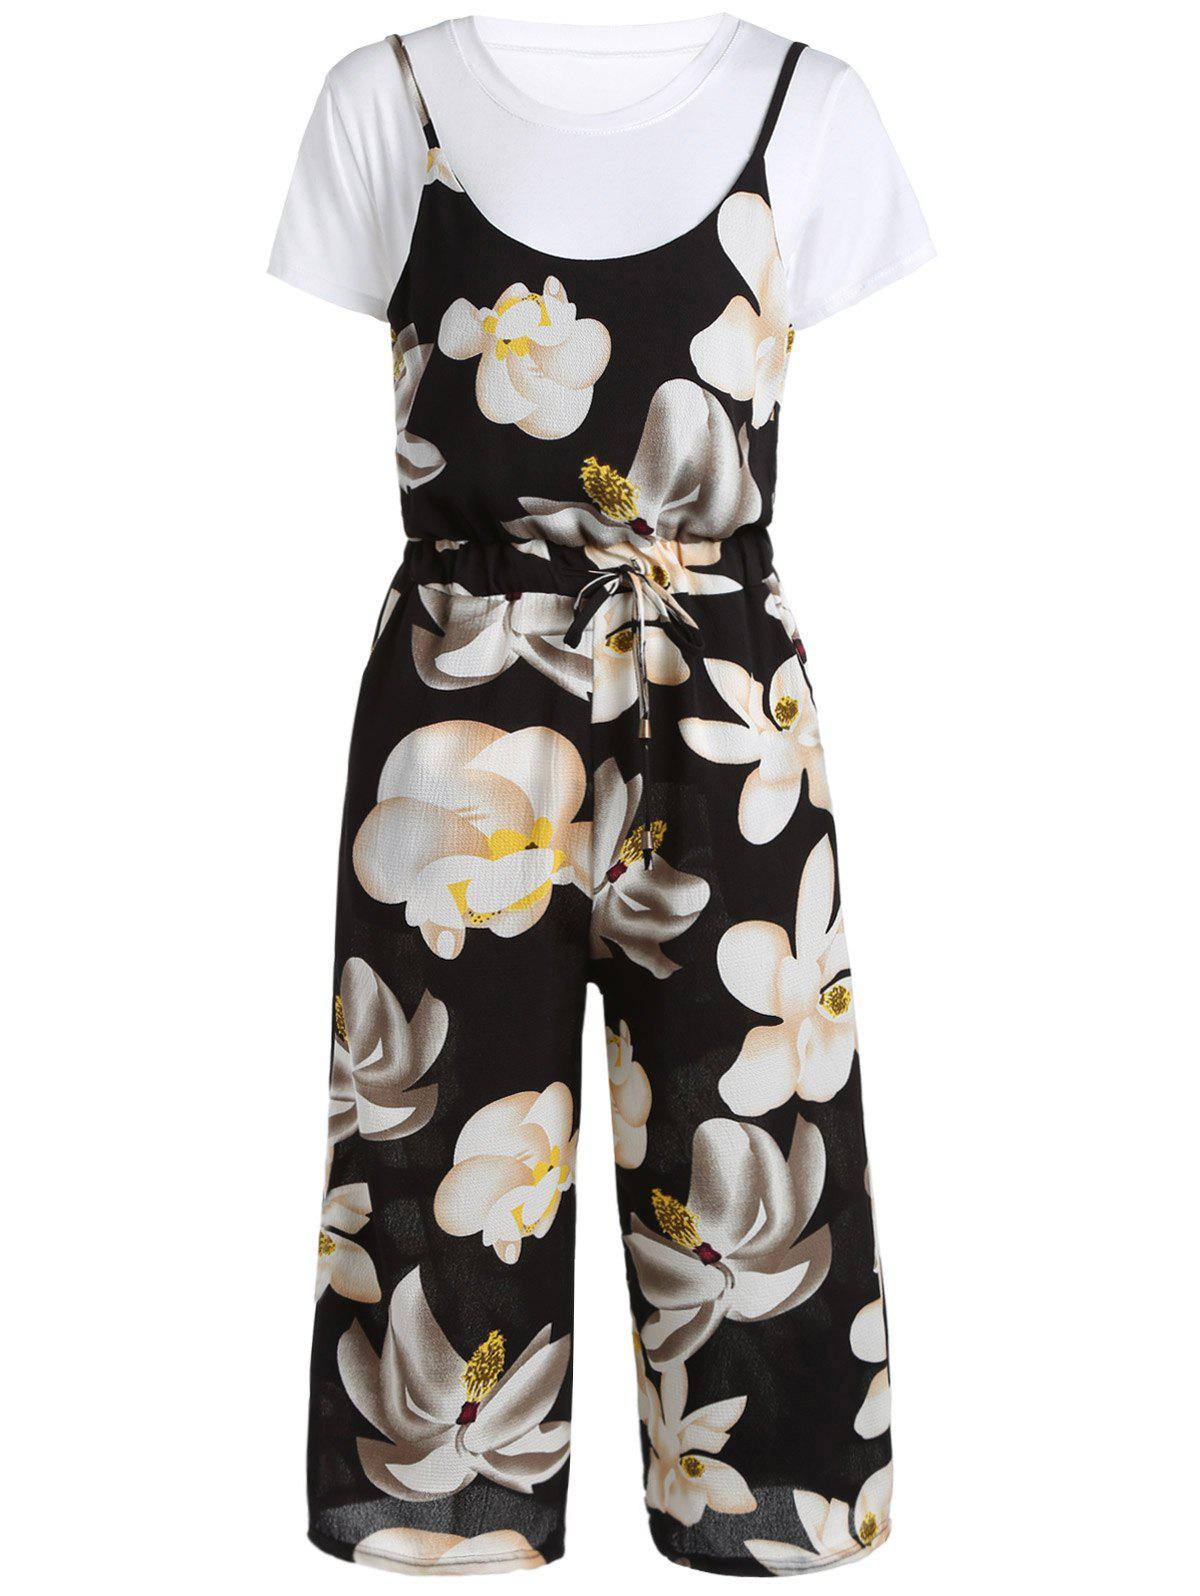 Sweet Women's White T-Shirt and Floral Print Drawstring Jumpsuit - BLACK ONE SIZE(FIT SIZE XS TO M)